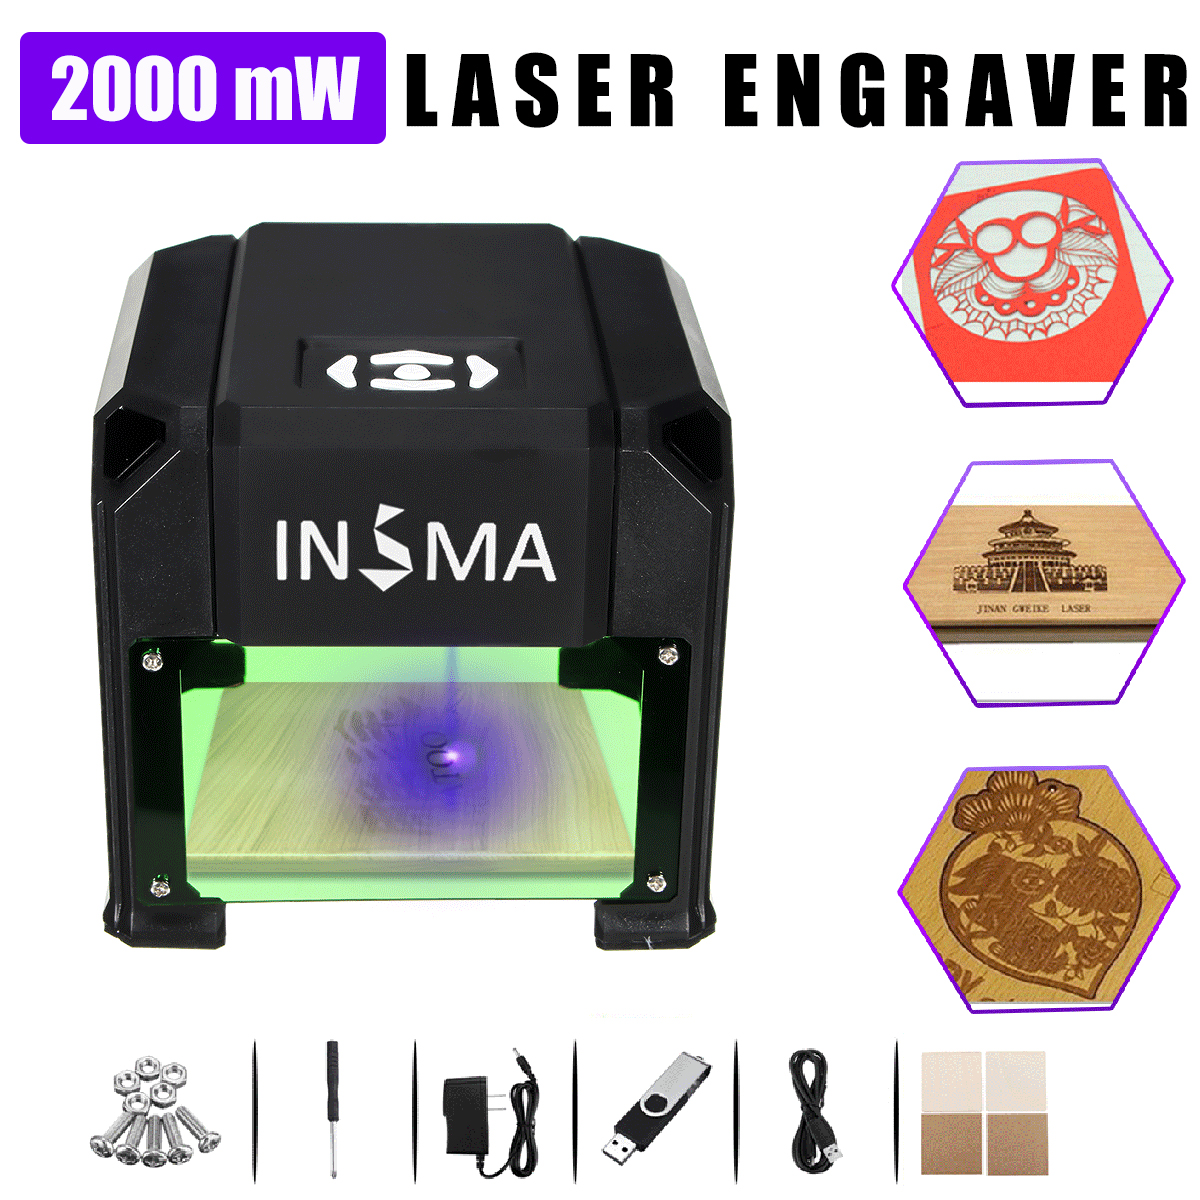 ₪40 mW USB Desktop Laser Engraver DIY Logo Mark Printer CNC ...